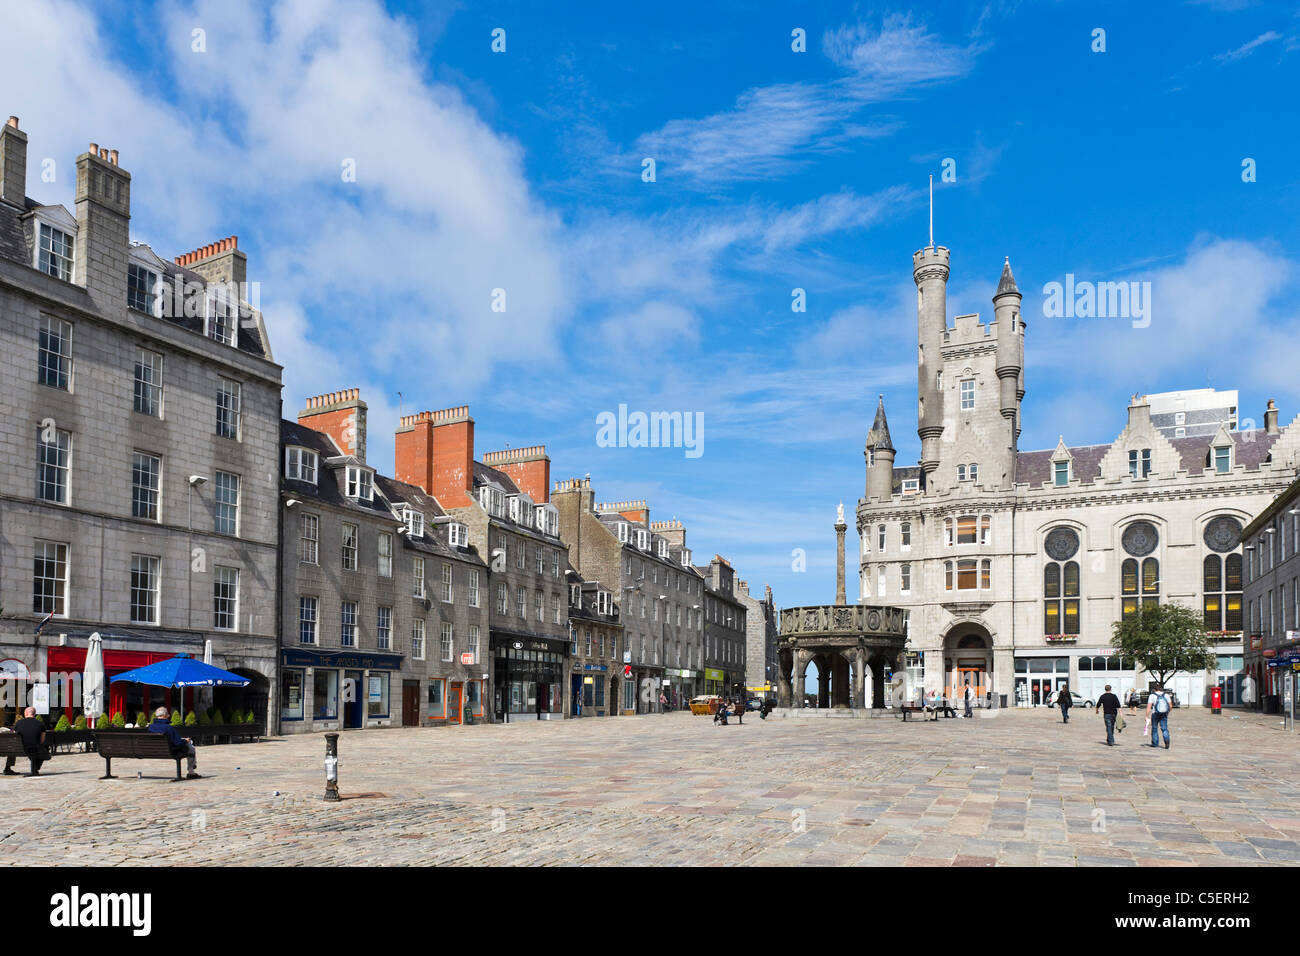 Castlegate in the city centre, Aberdeen, Scotland, UK - Stock Image